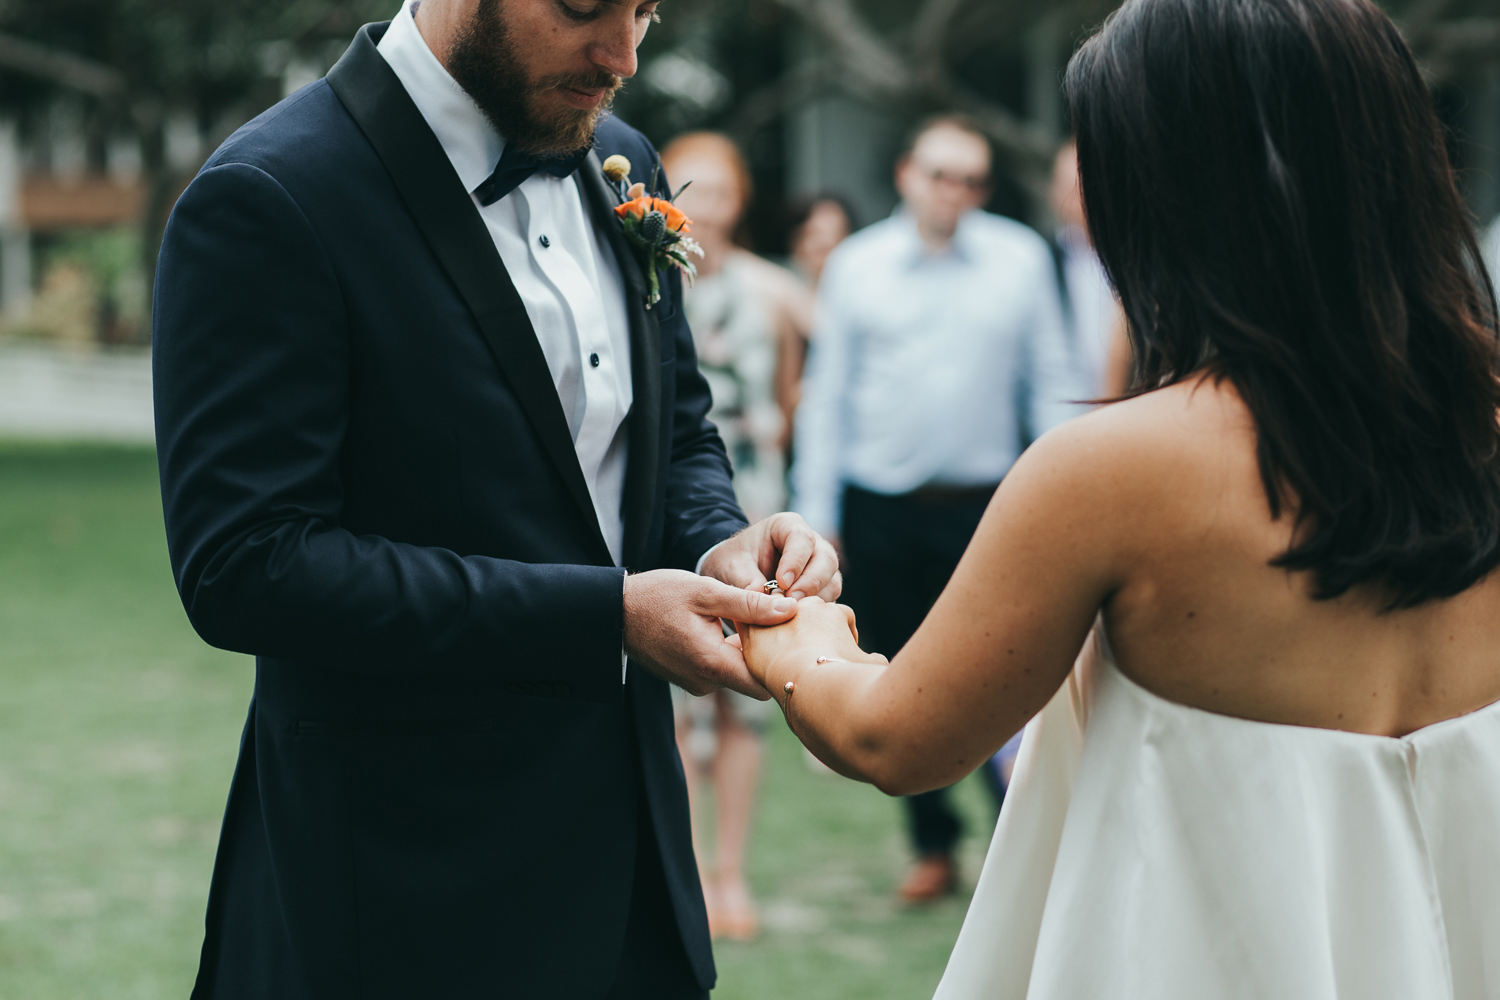 058-halcyon_house_byron_bay_wedding_photographer.jpg